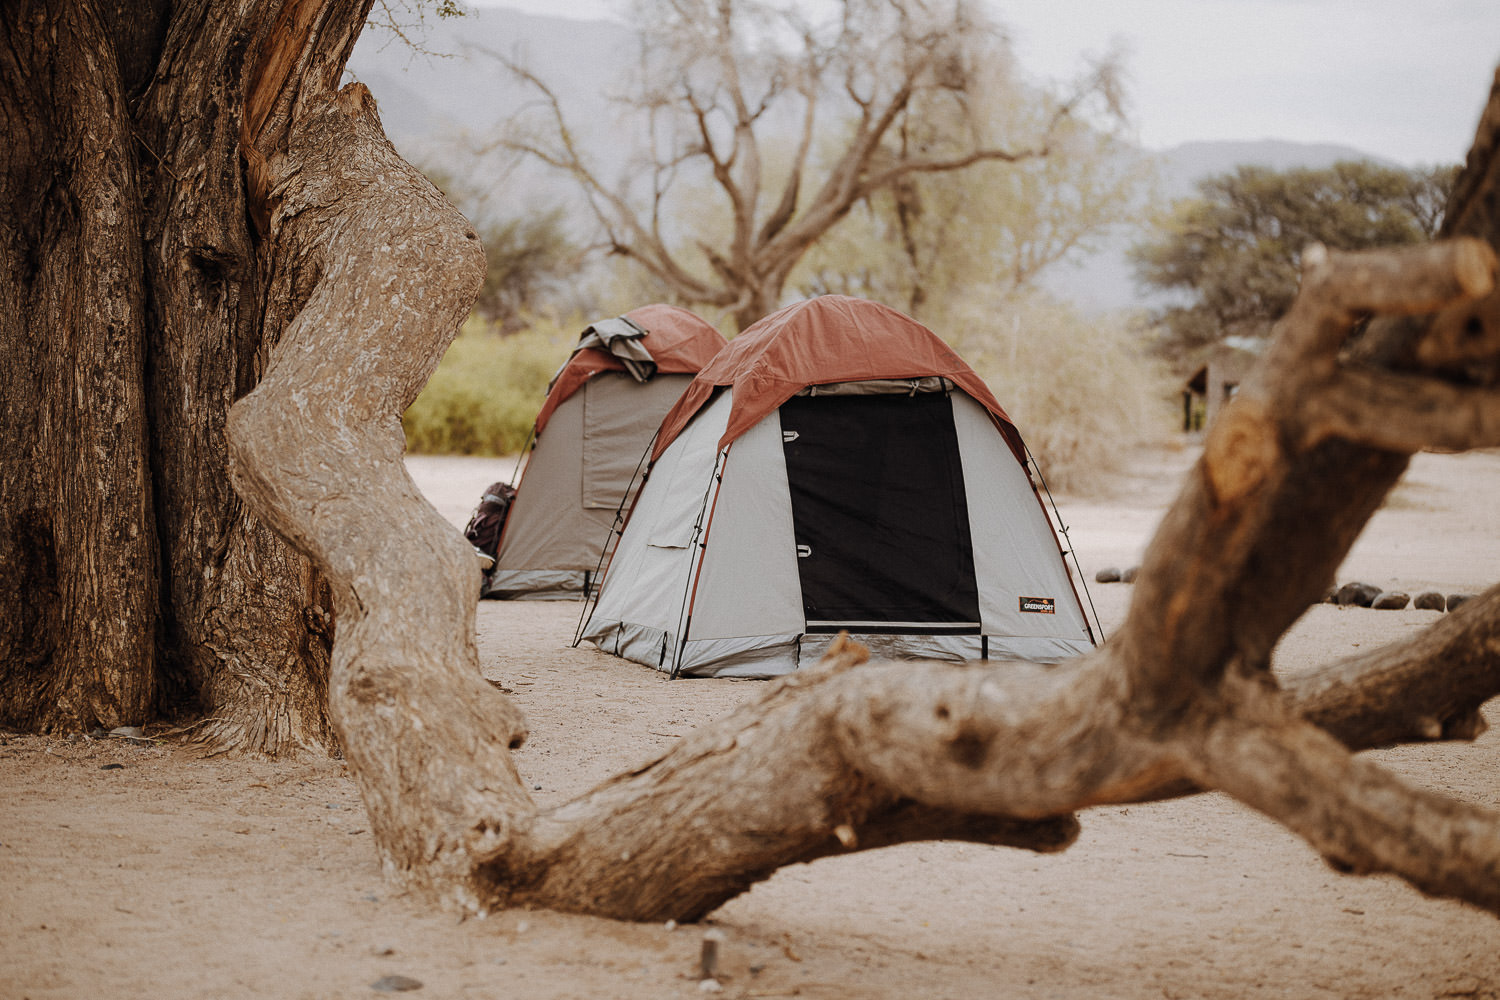 two tents in the desert in namibia